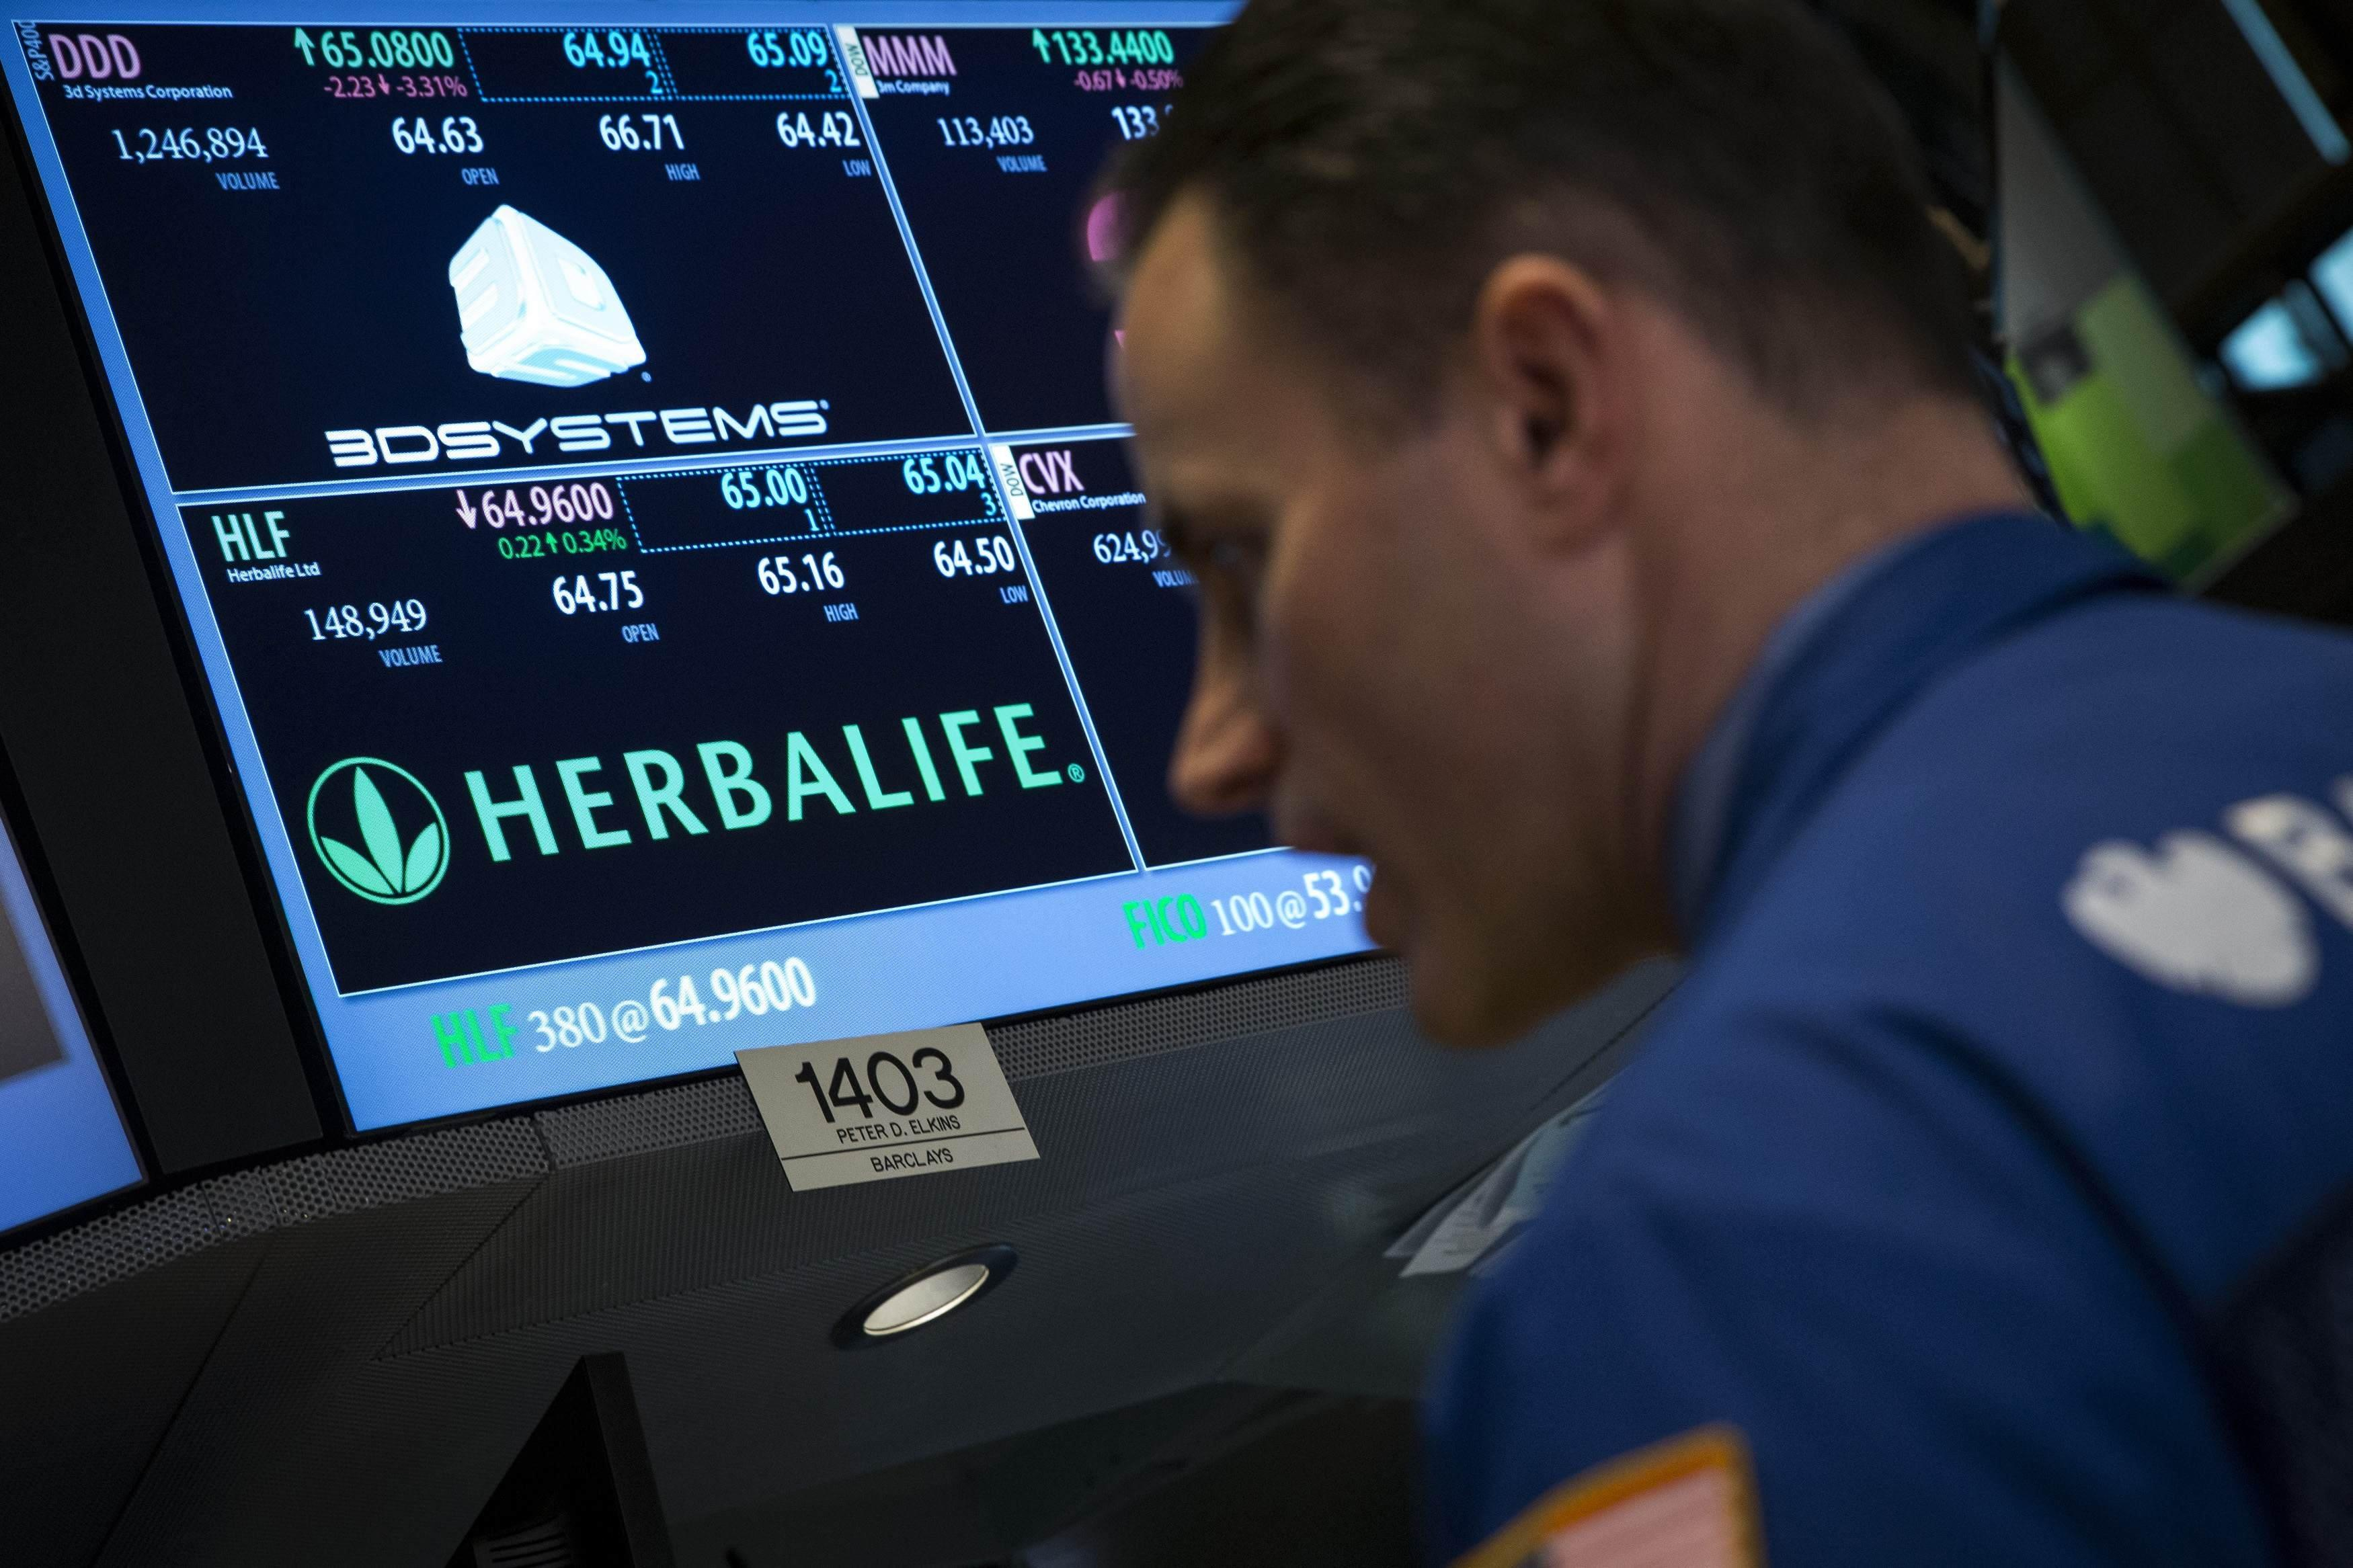 Herbalife Contacted by Law Enforcement Agencies: CNBC